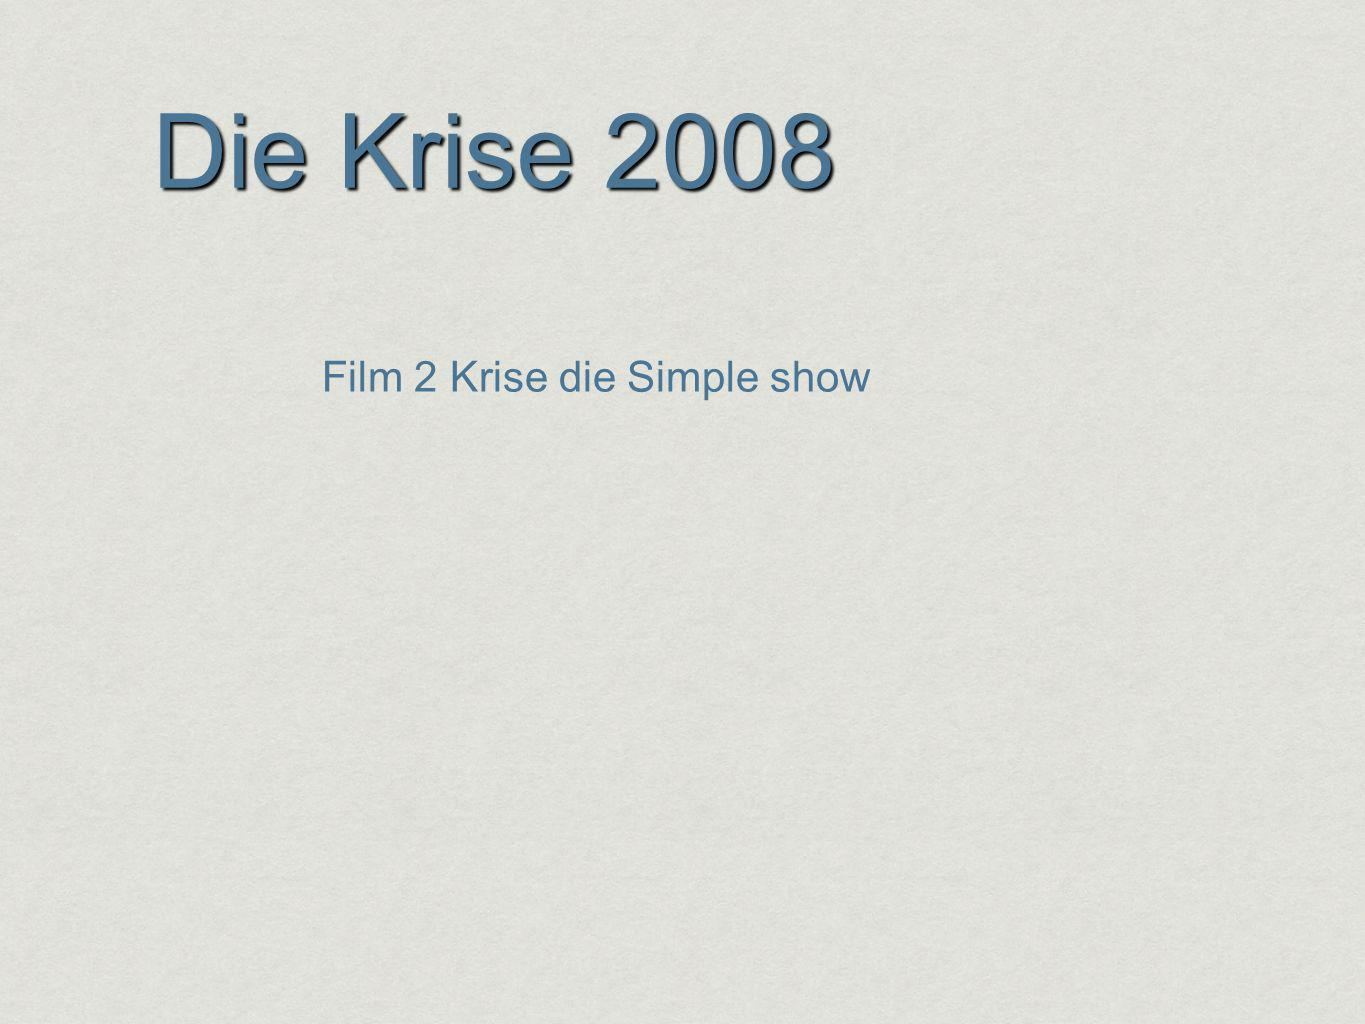 Die Krise 2008 Film 2 Krise die Simple show